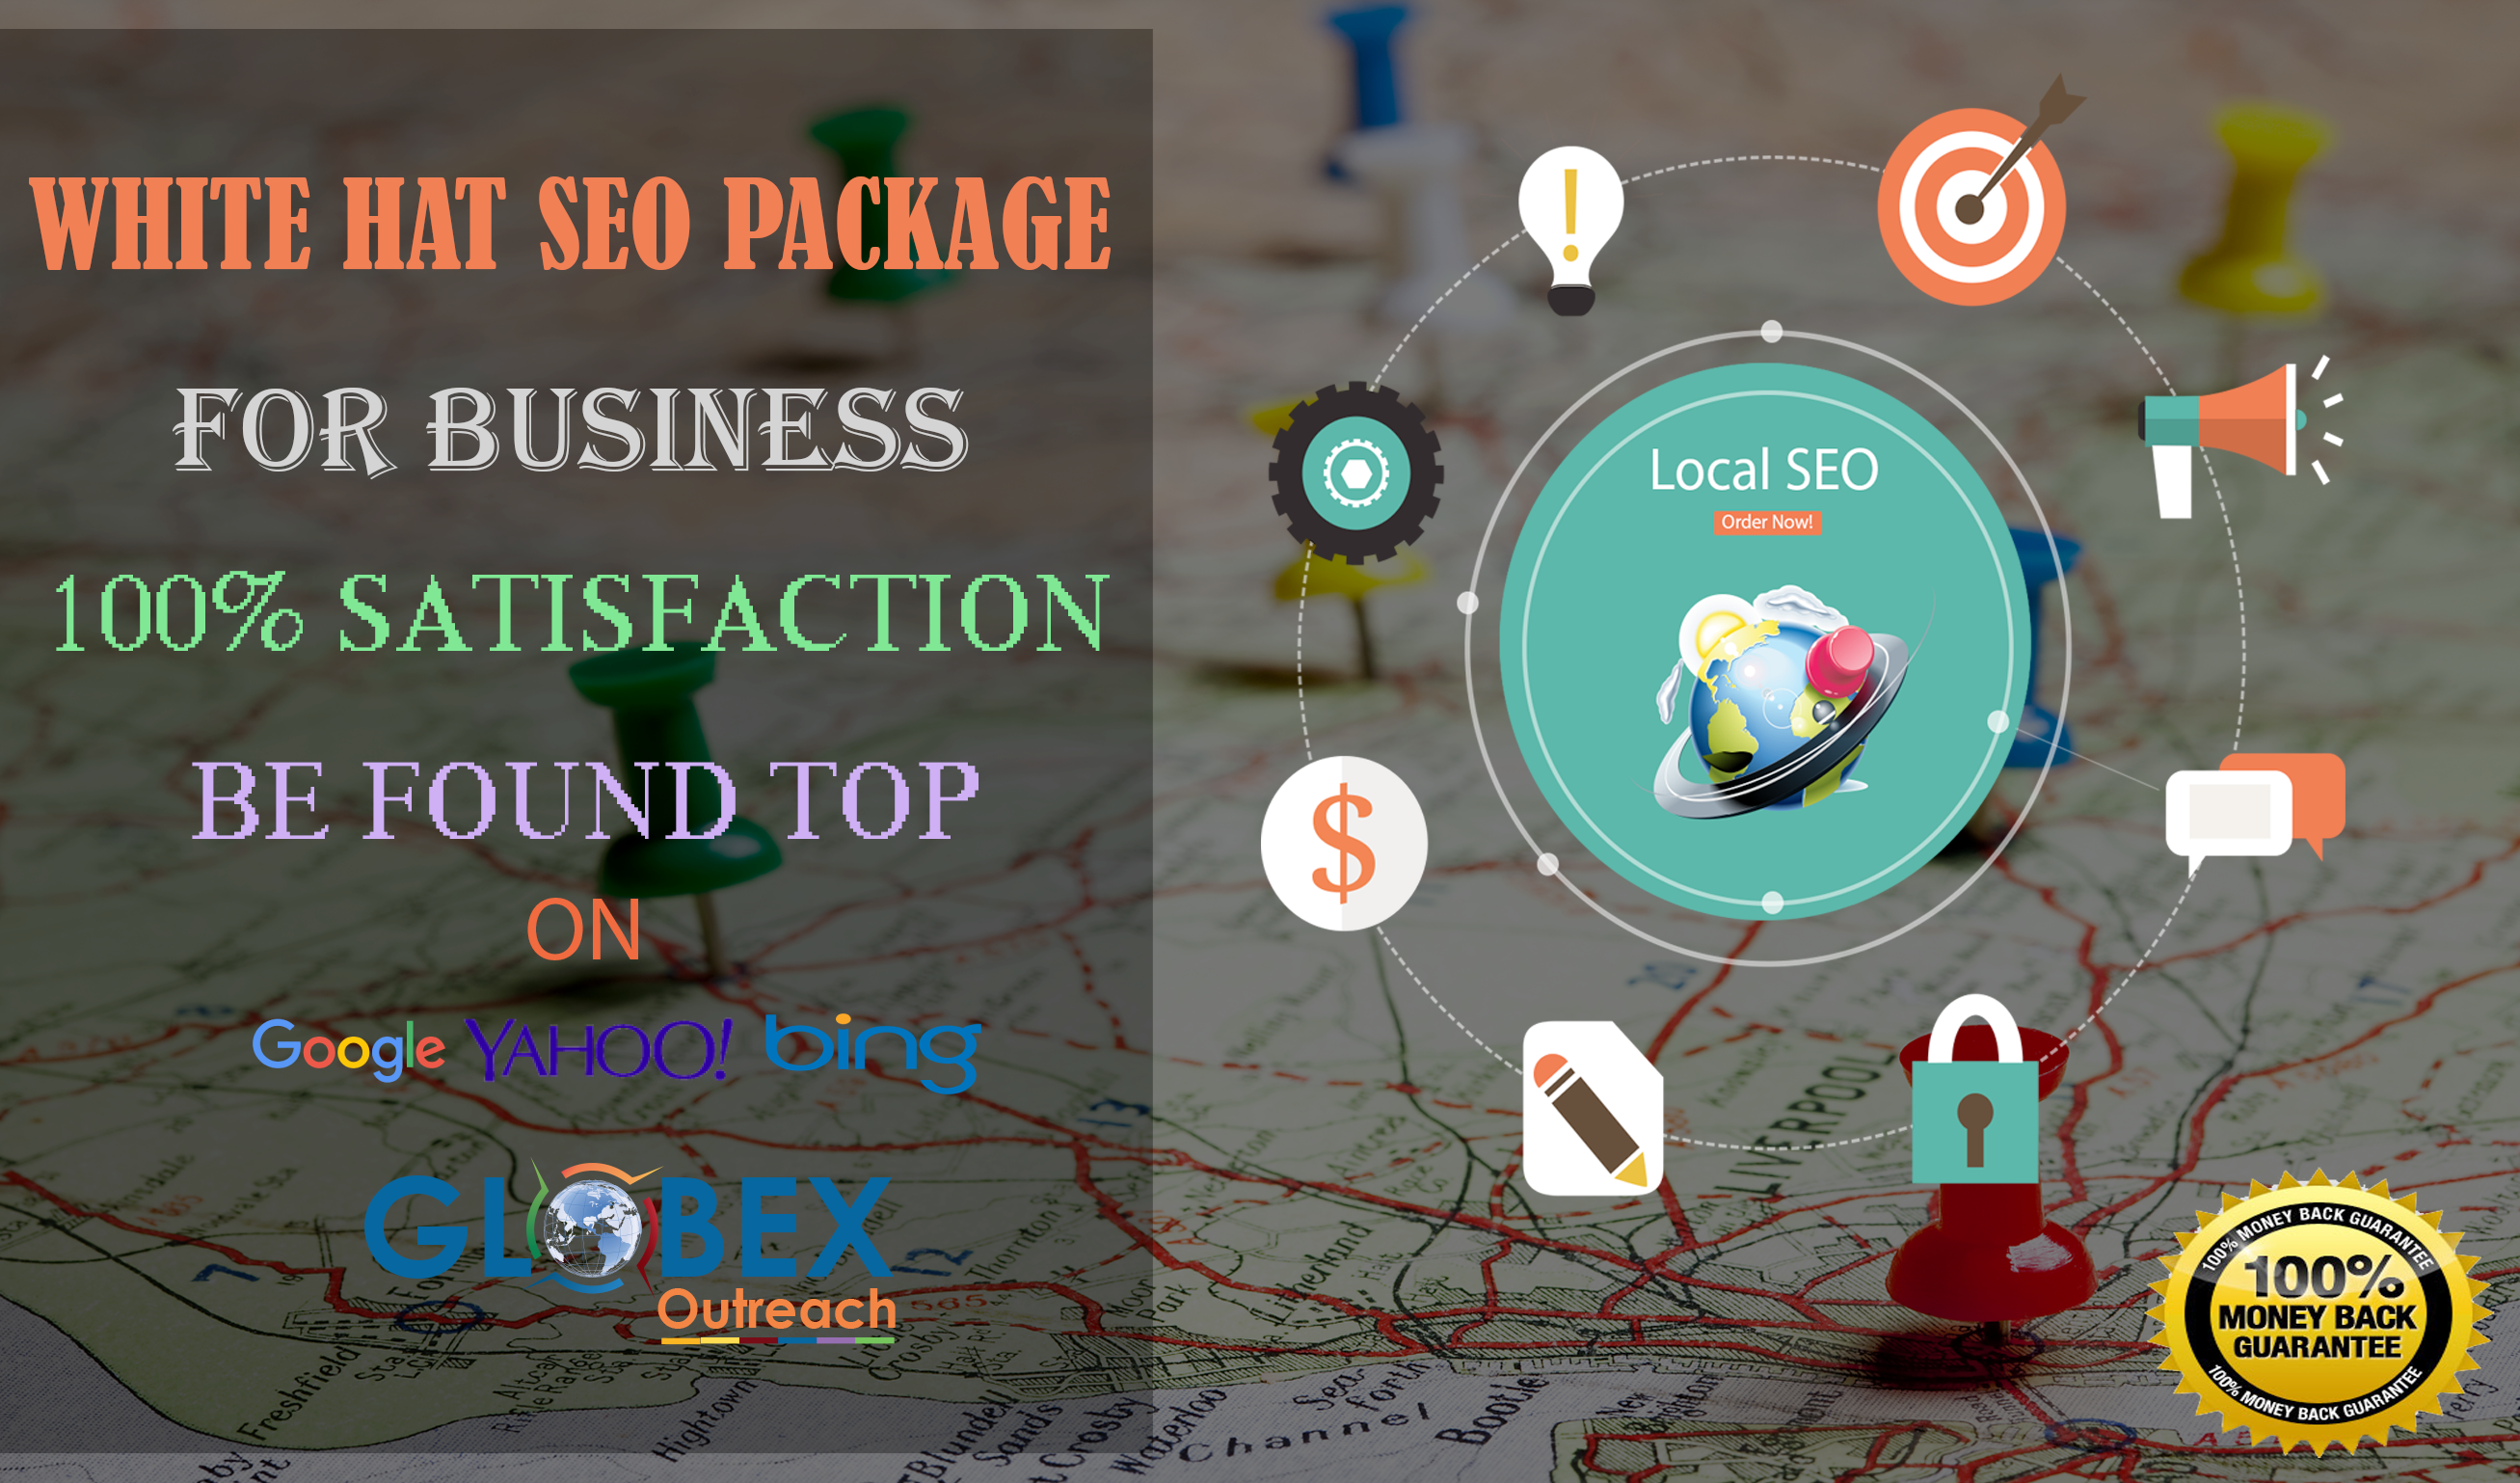 White Hat SEO Package